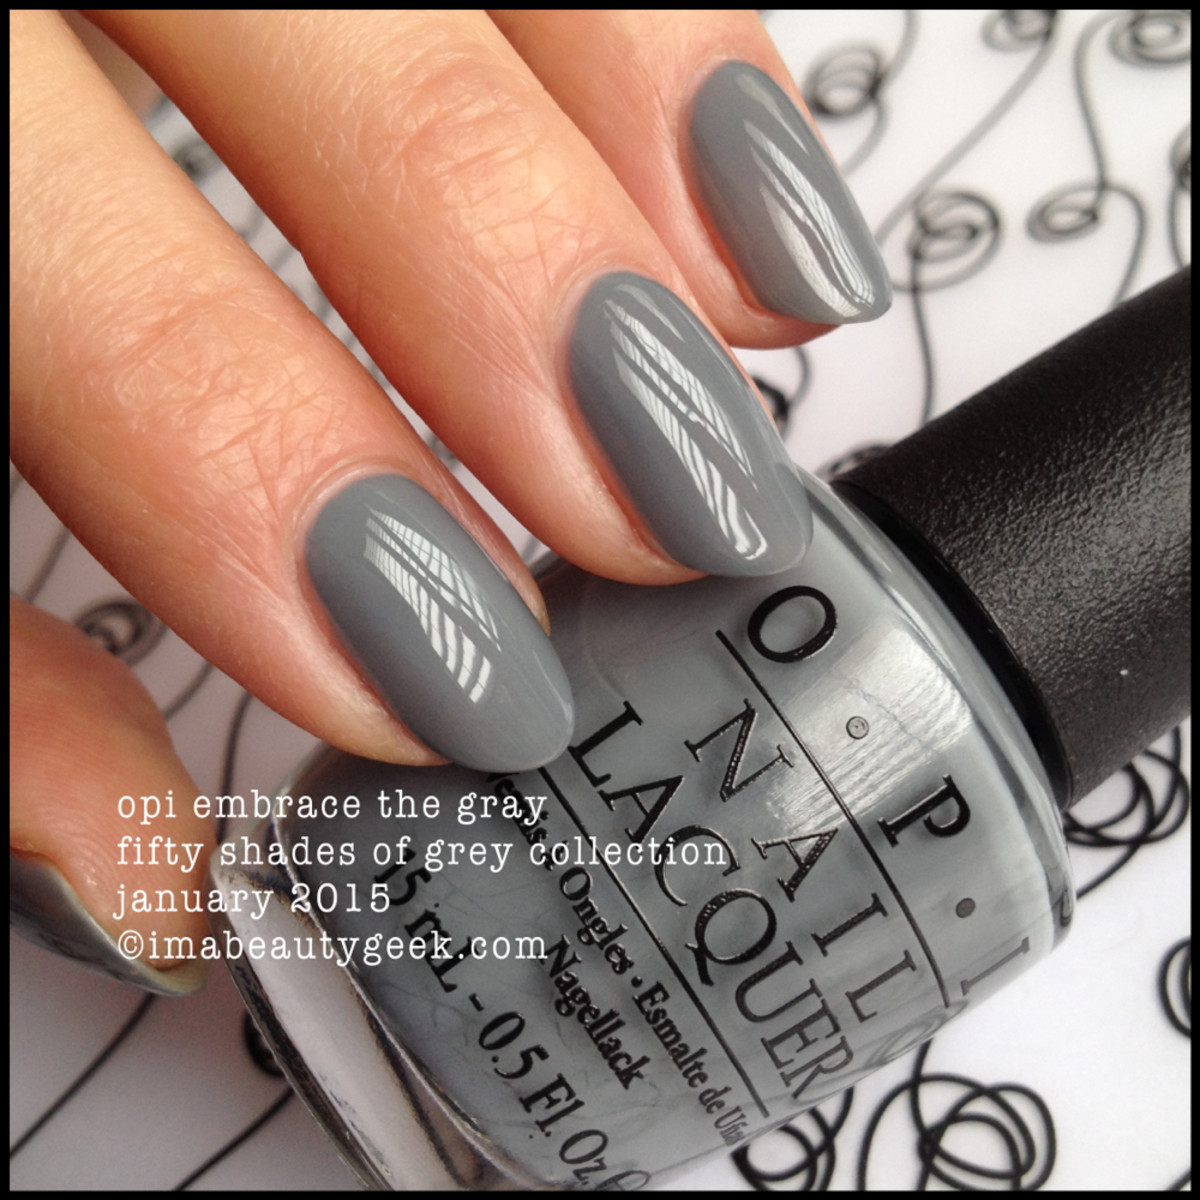 OPI FIFTY SHADES OF GREY, THE LIMITED-EDITION COLLECTION